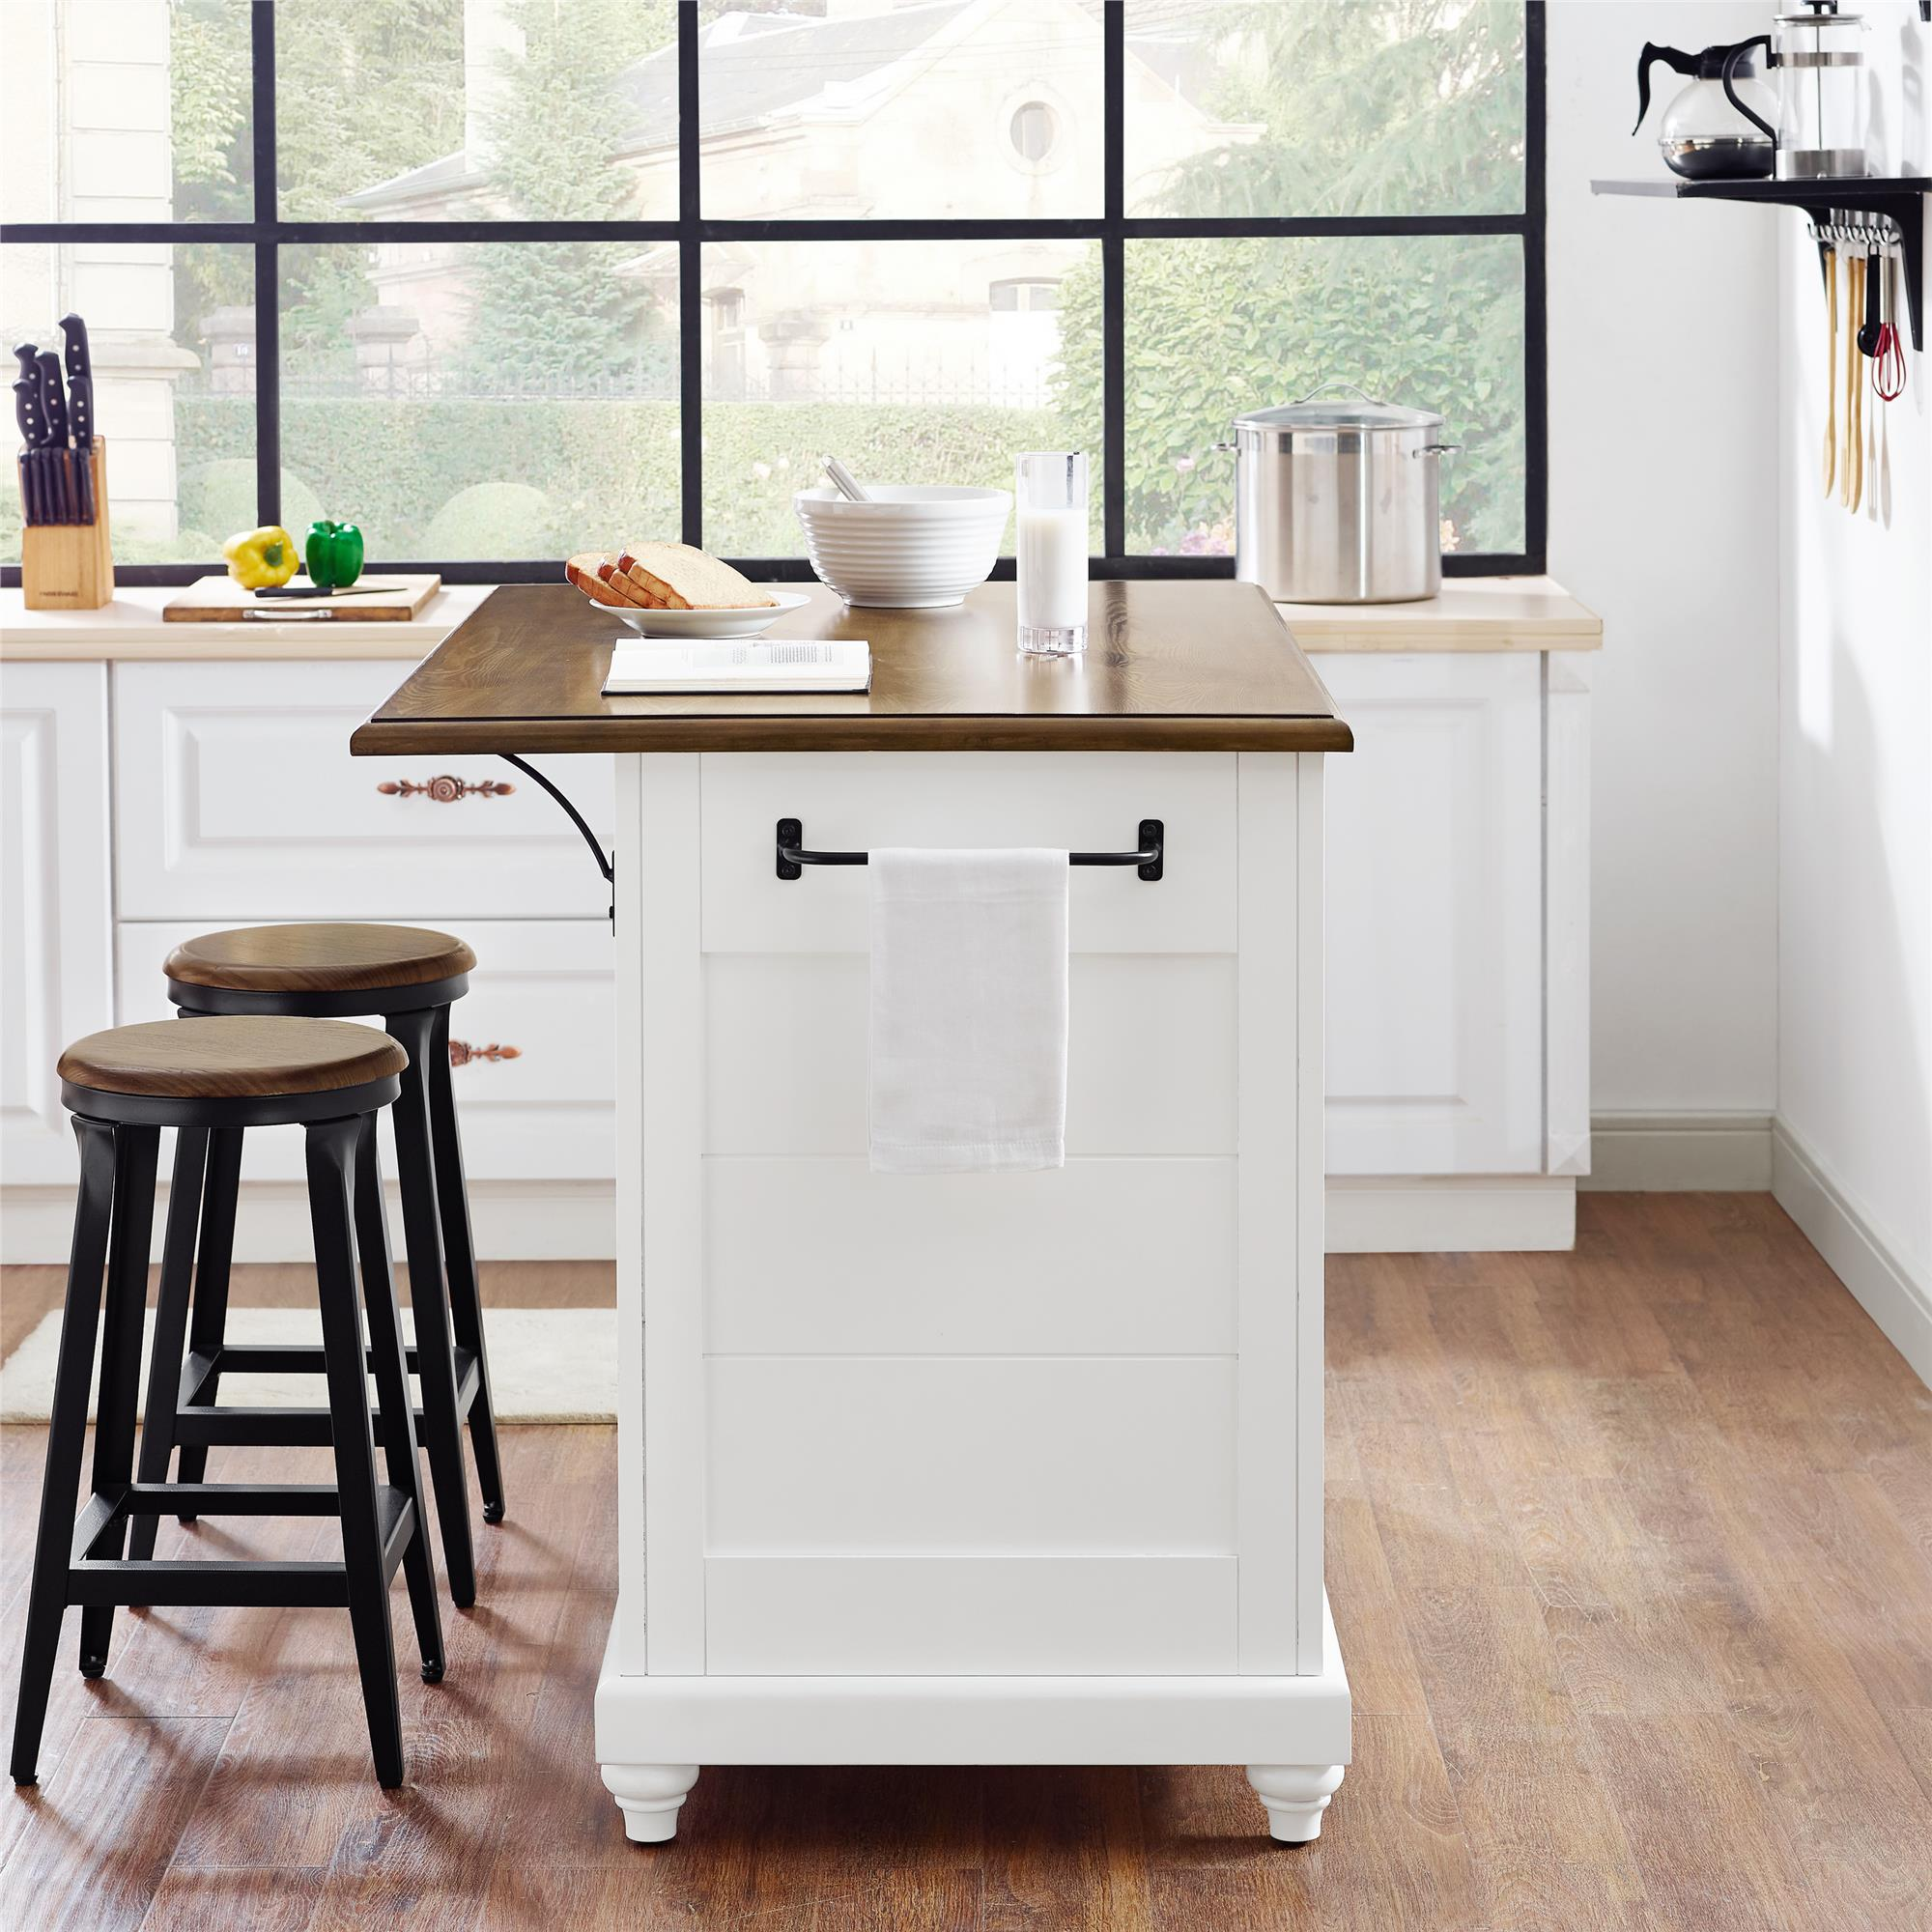 Stools Kitchen Islands Dorel Home Furnishings Kelsey White Kitchen Island With 2